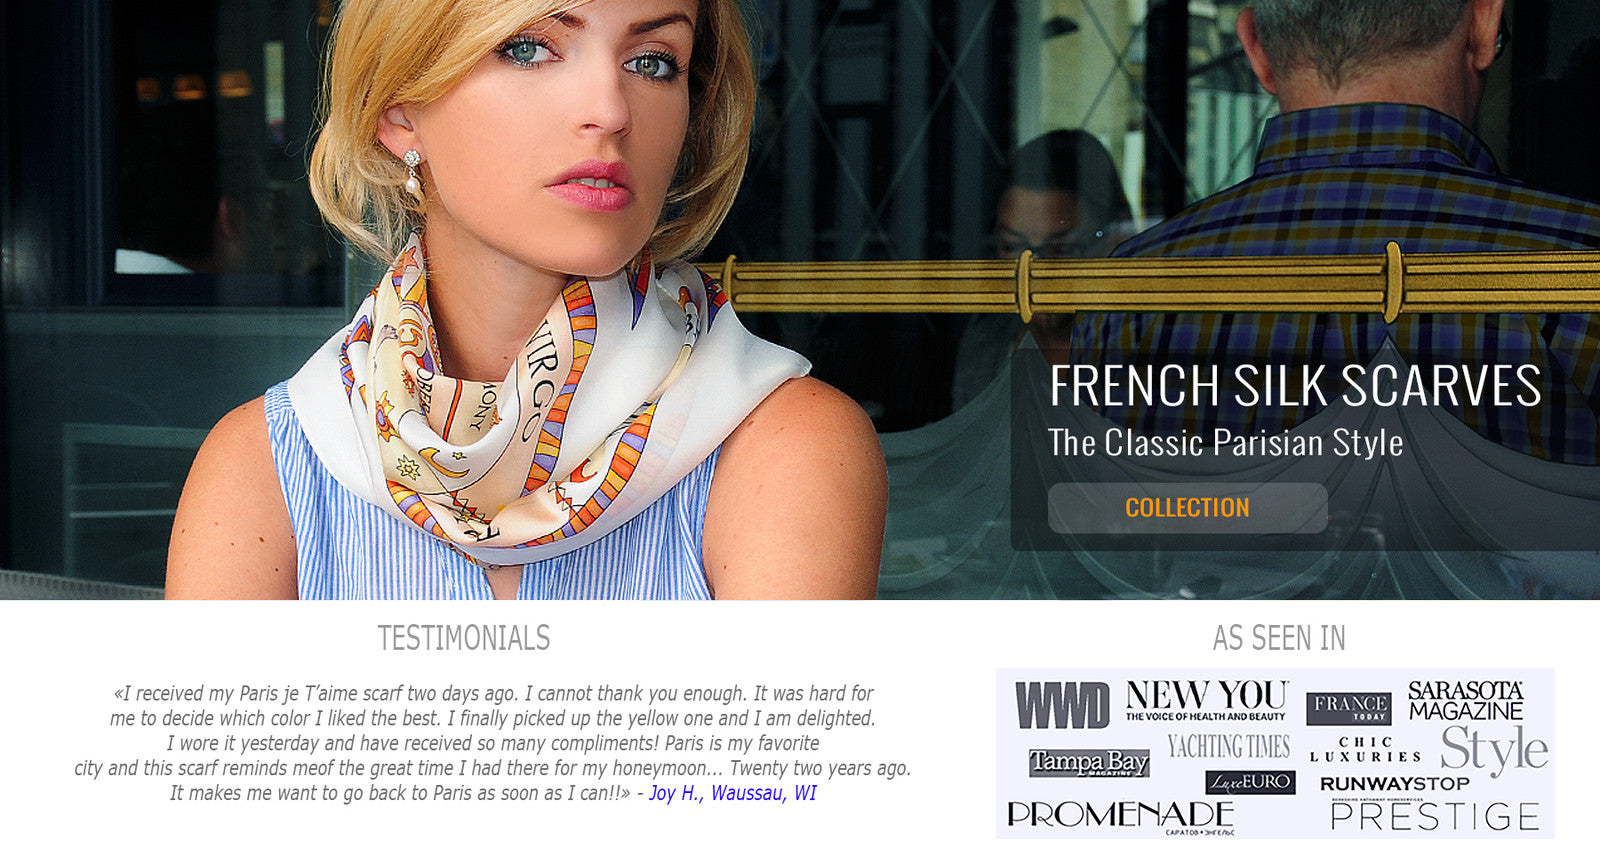 Designer luxury french silk scarves by ANNE TOURAINE Paris™